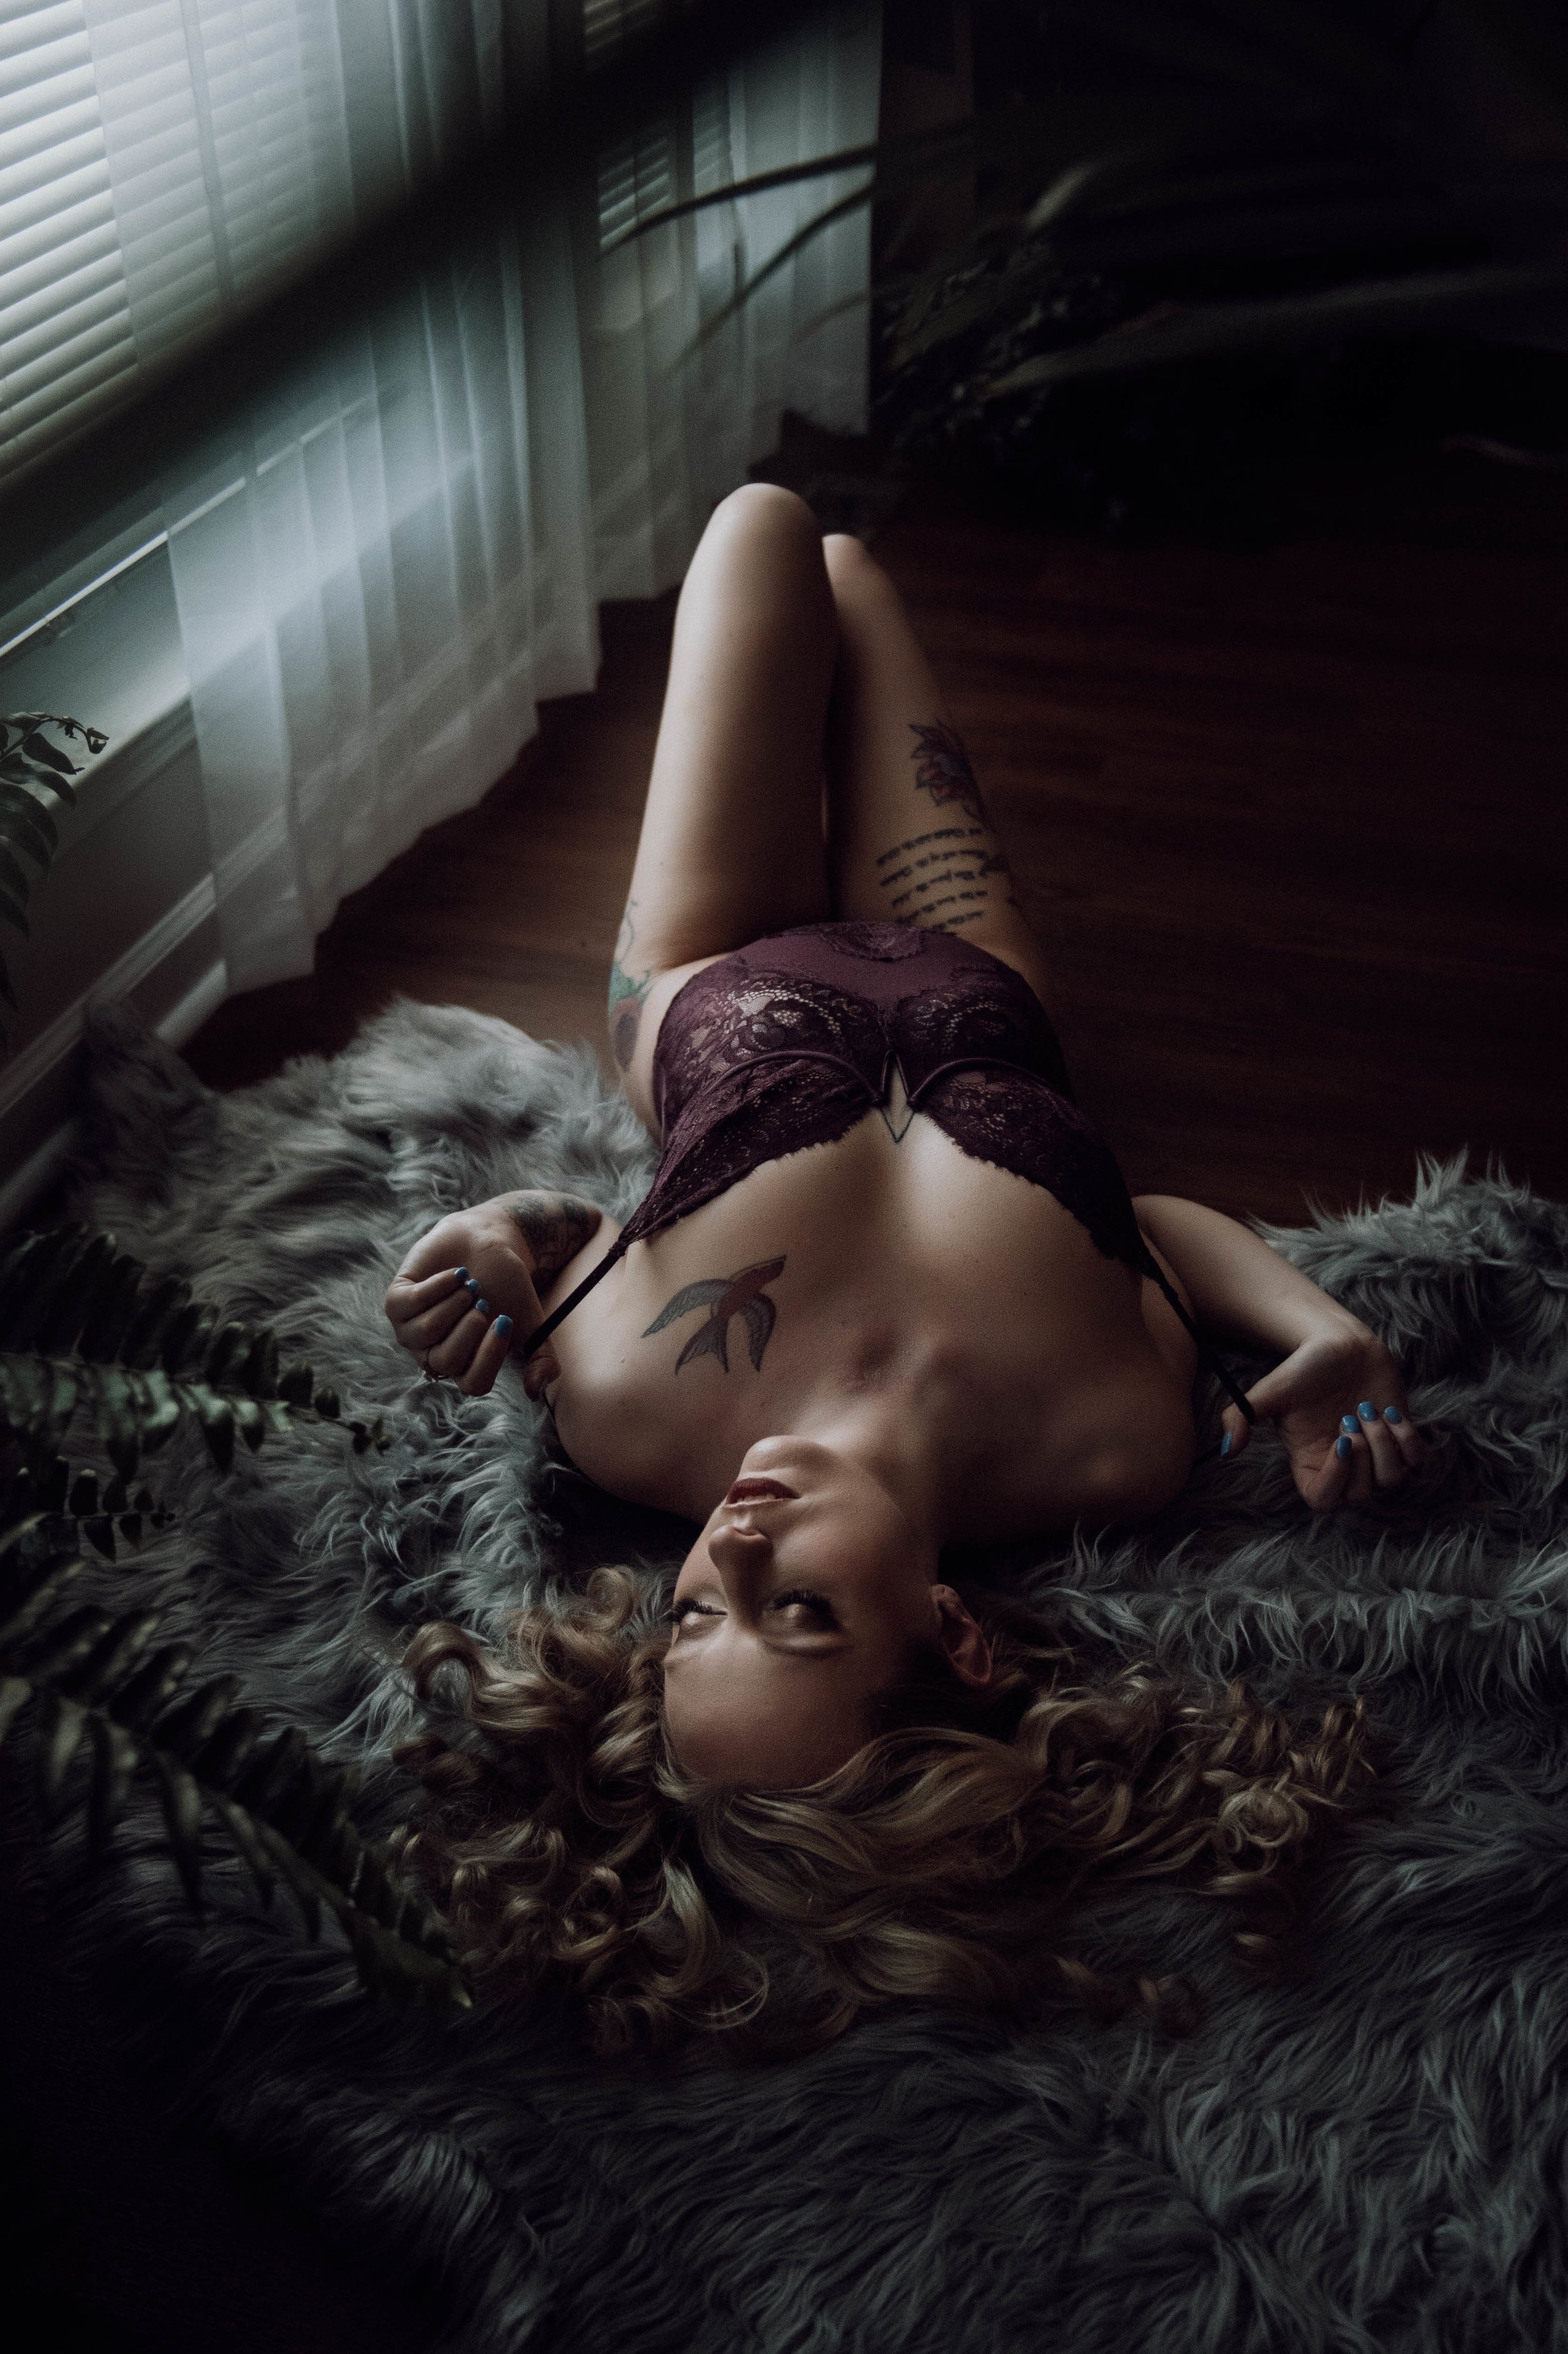 Blonde woman laying on rug in purple lace lingerie boudoir photography new york studio